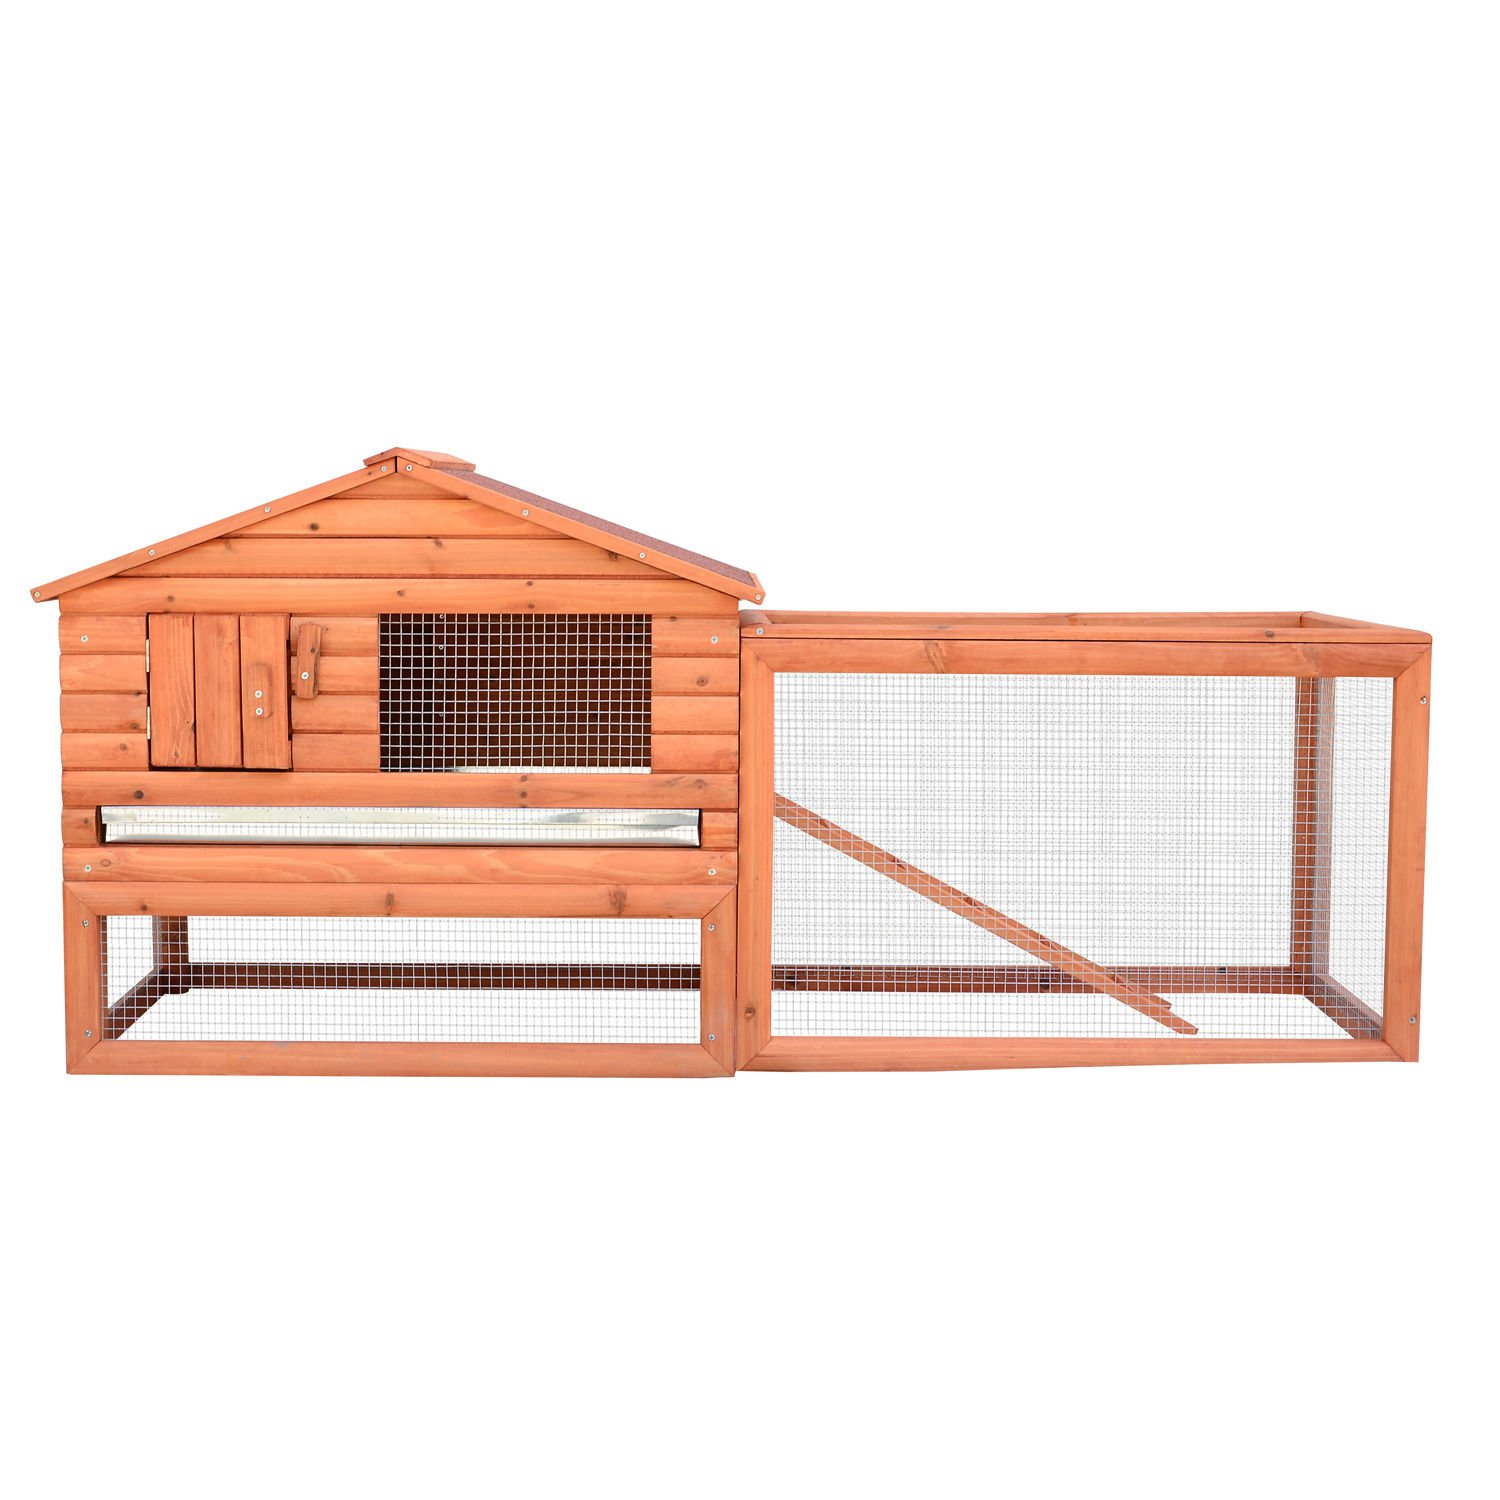 Wooden Rabbit Chicken House Hutch Coop Bunny Home Hen Pet Animal Backyard Run High Protection - House Deals